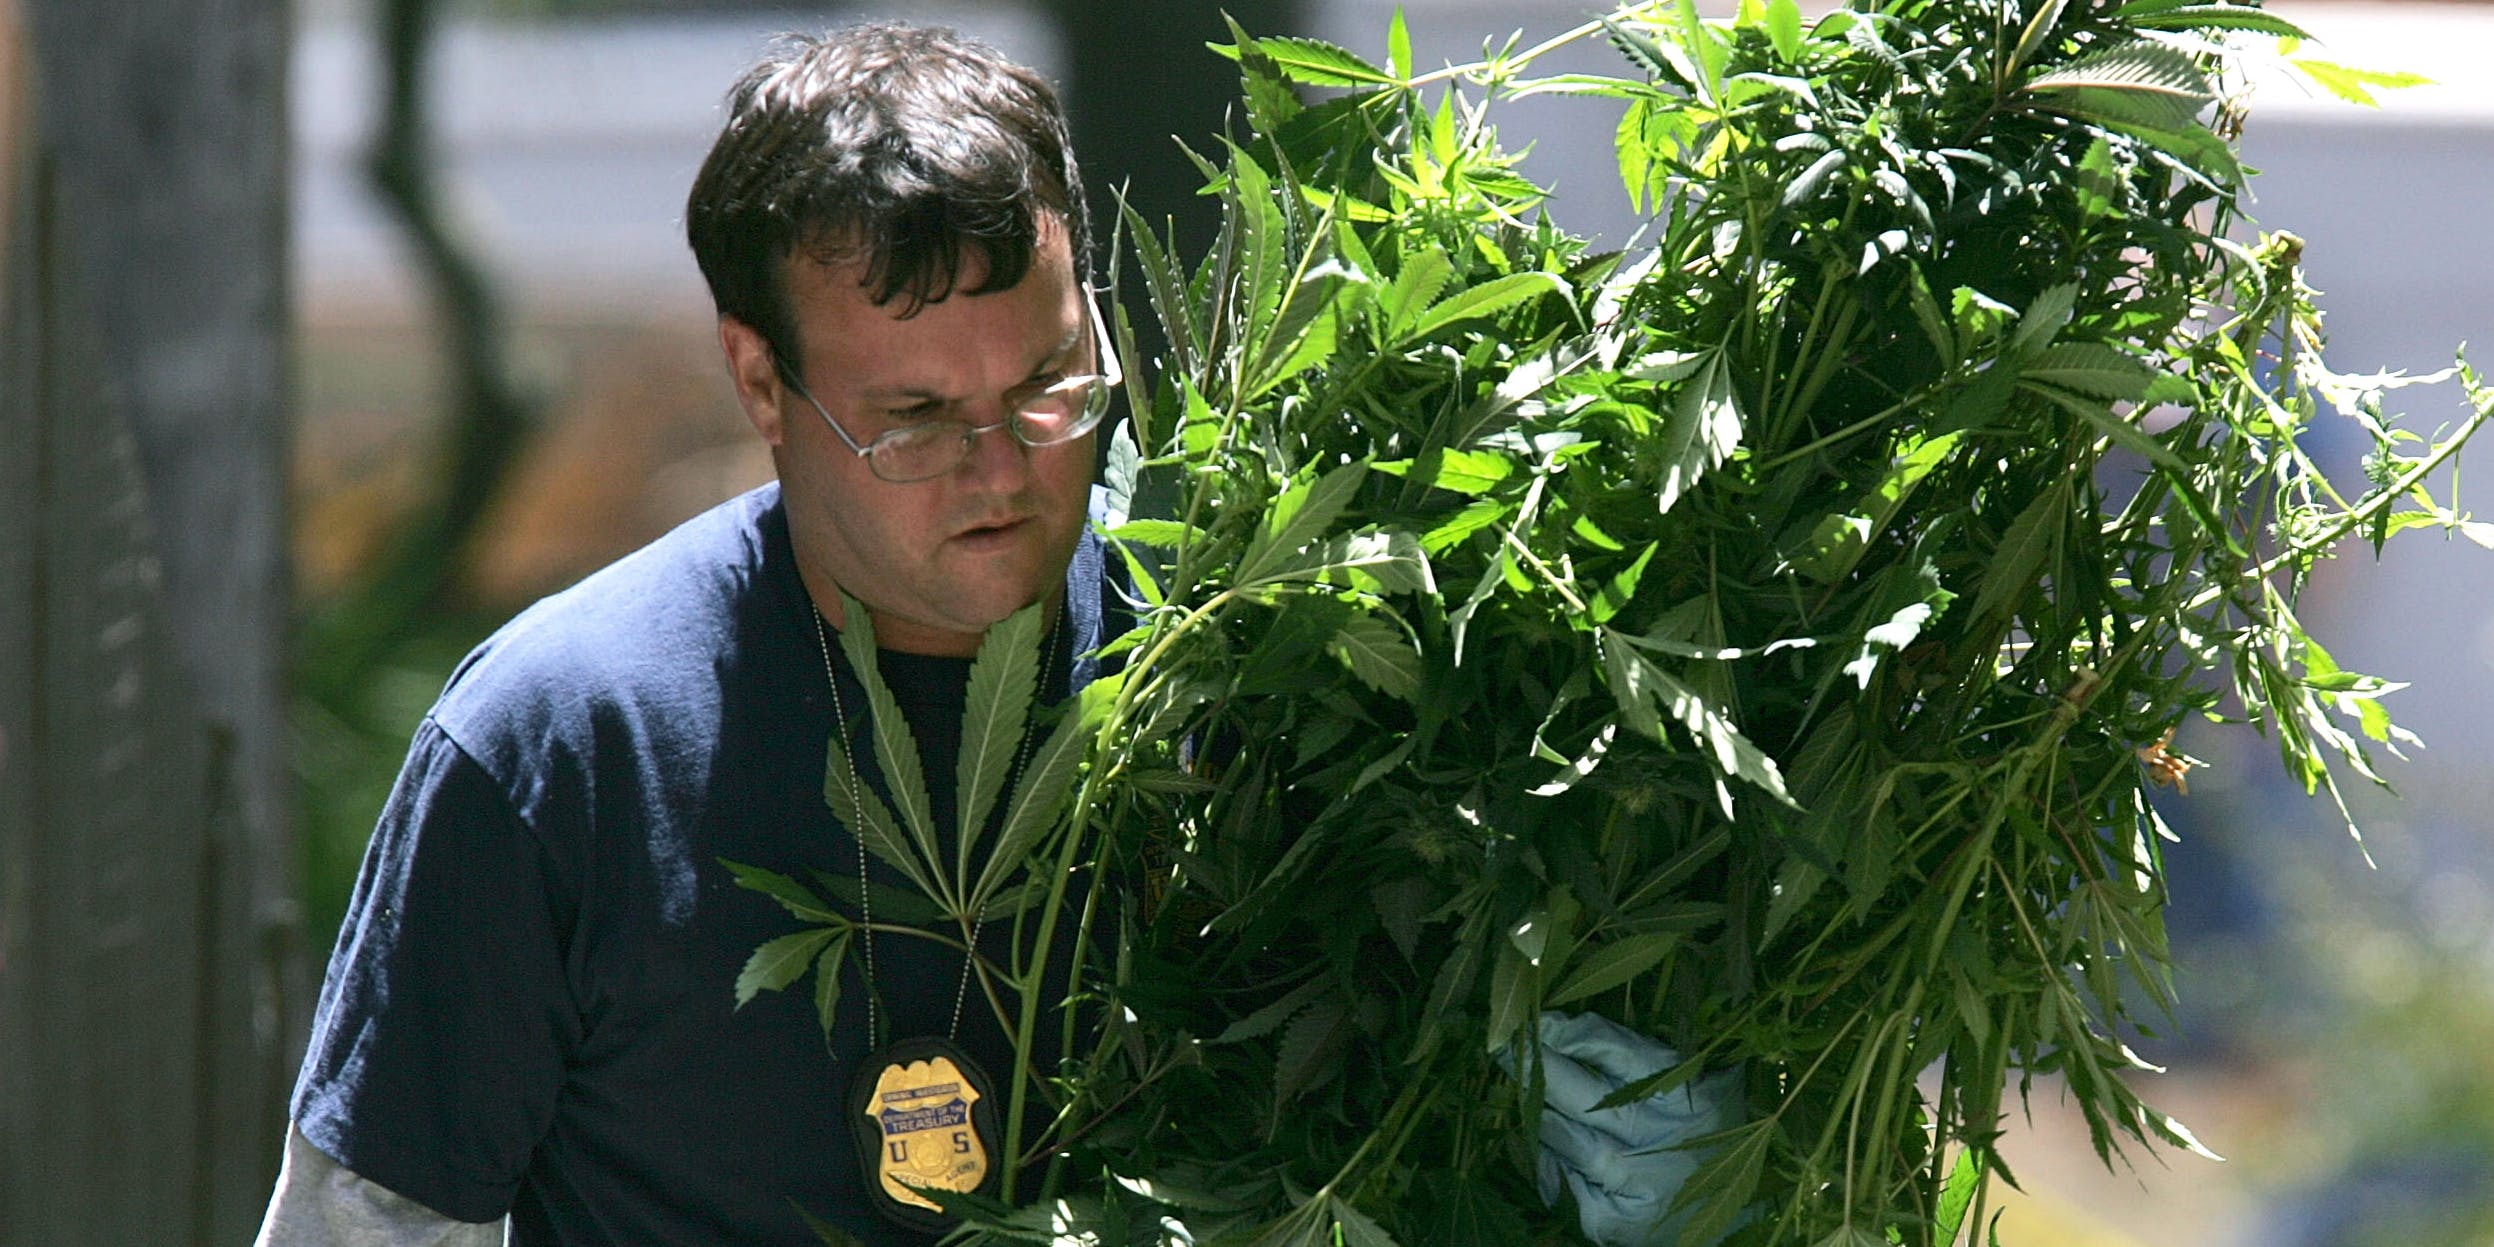 Federal Agents Raid Medical Marijuana Club in 2005